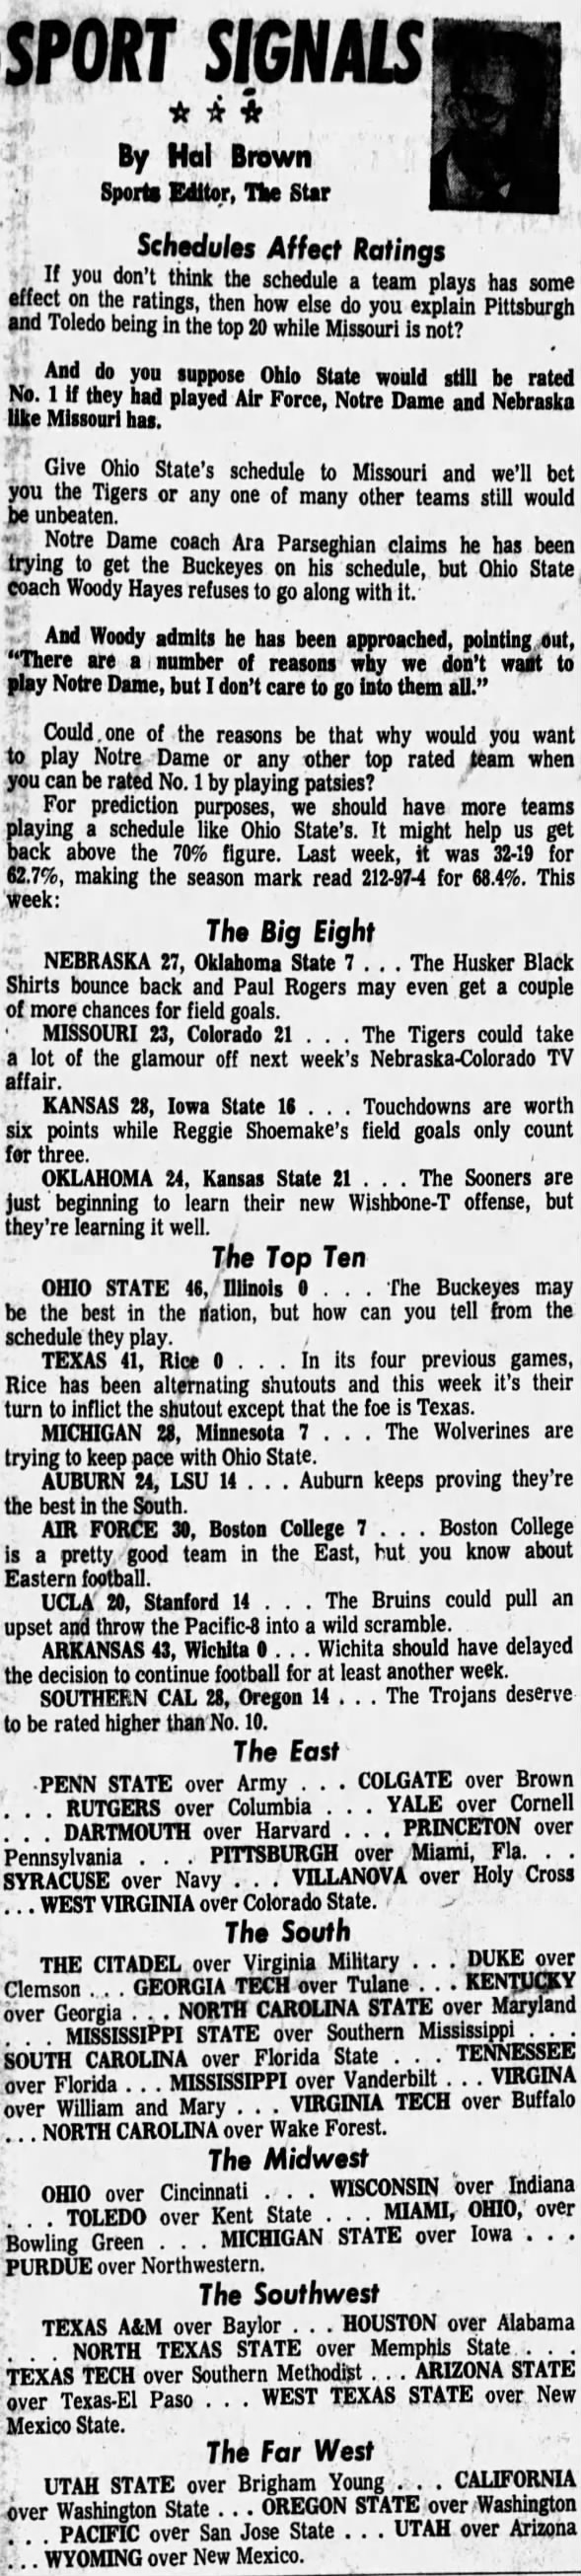 1970.10 Hal Brown, predictions for Okla. State week